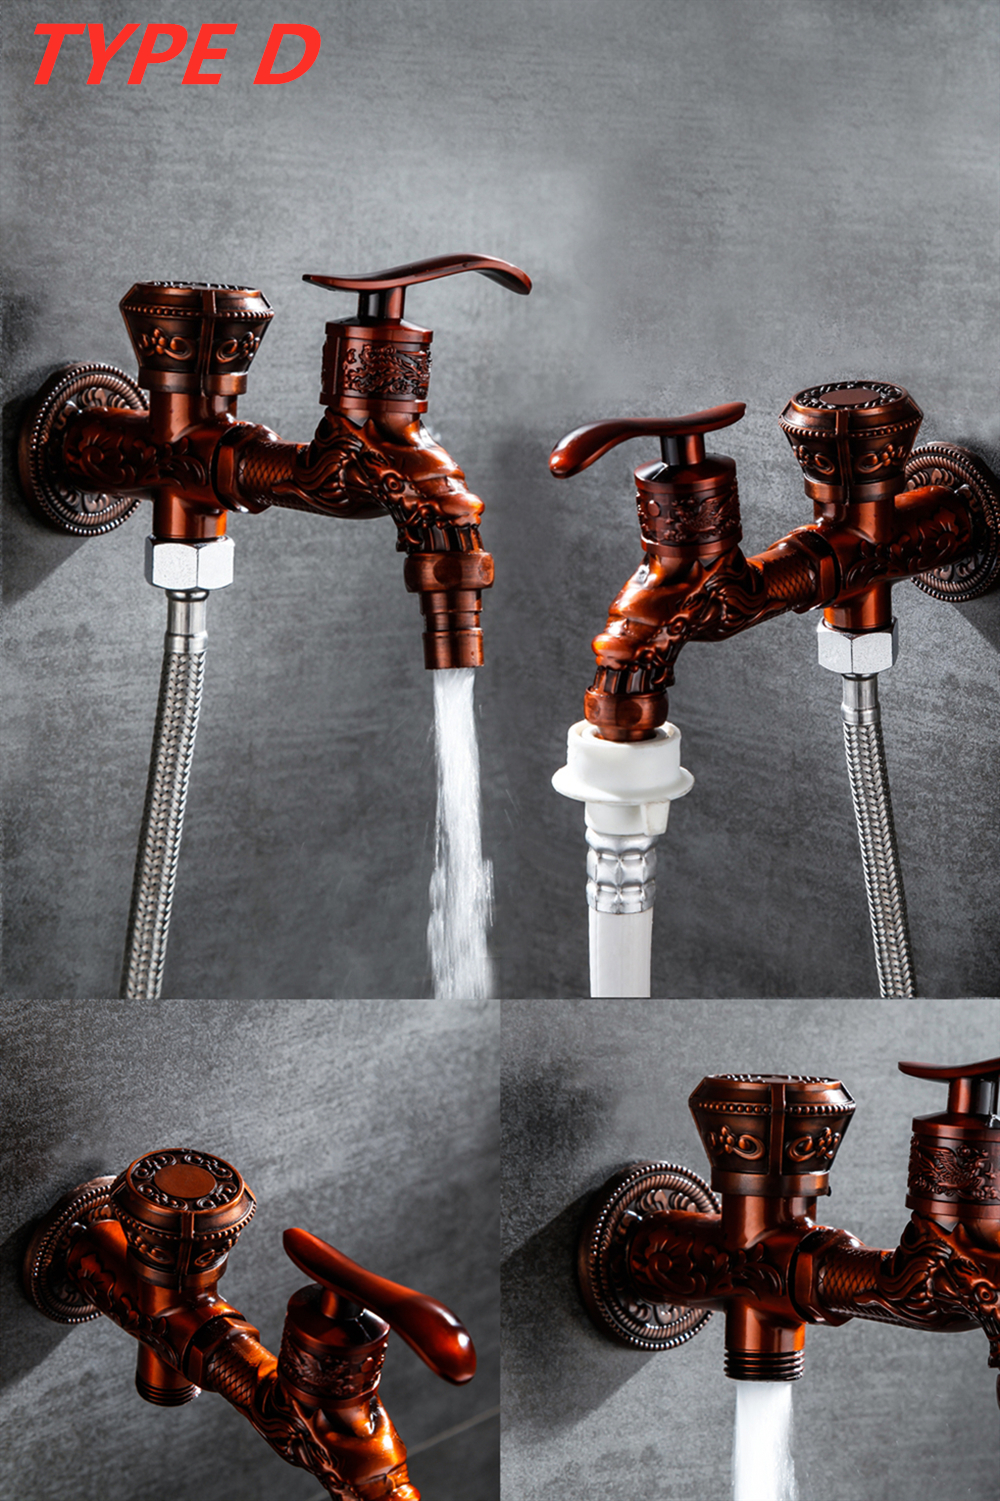 Doodii Carved Wall Mount Zinc Alloy Antique Bibcock Garden Wash Basin Faucet Decorative Outdoor Garden Mop Taps Torneira parede10